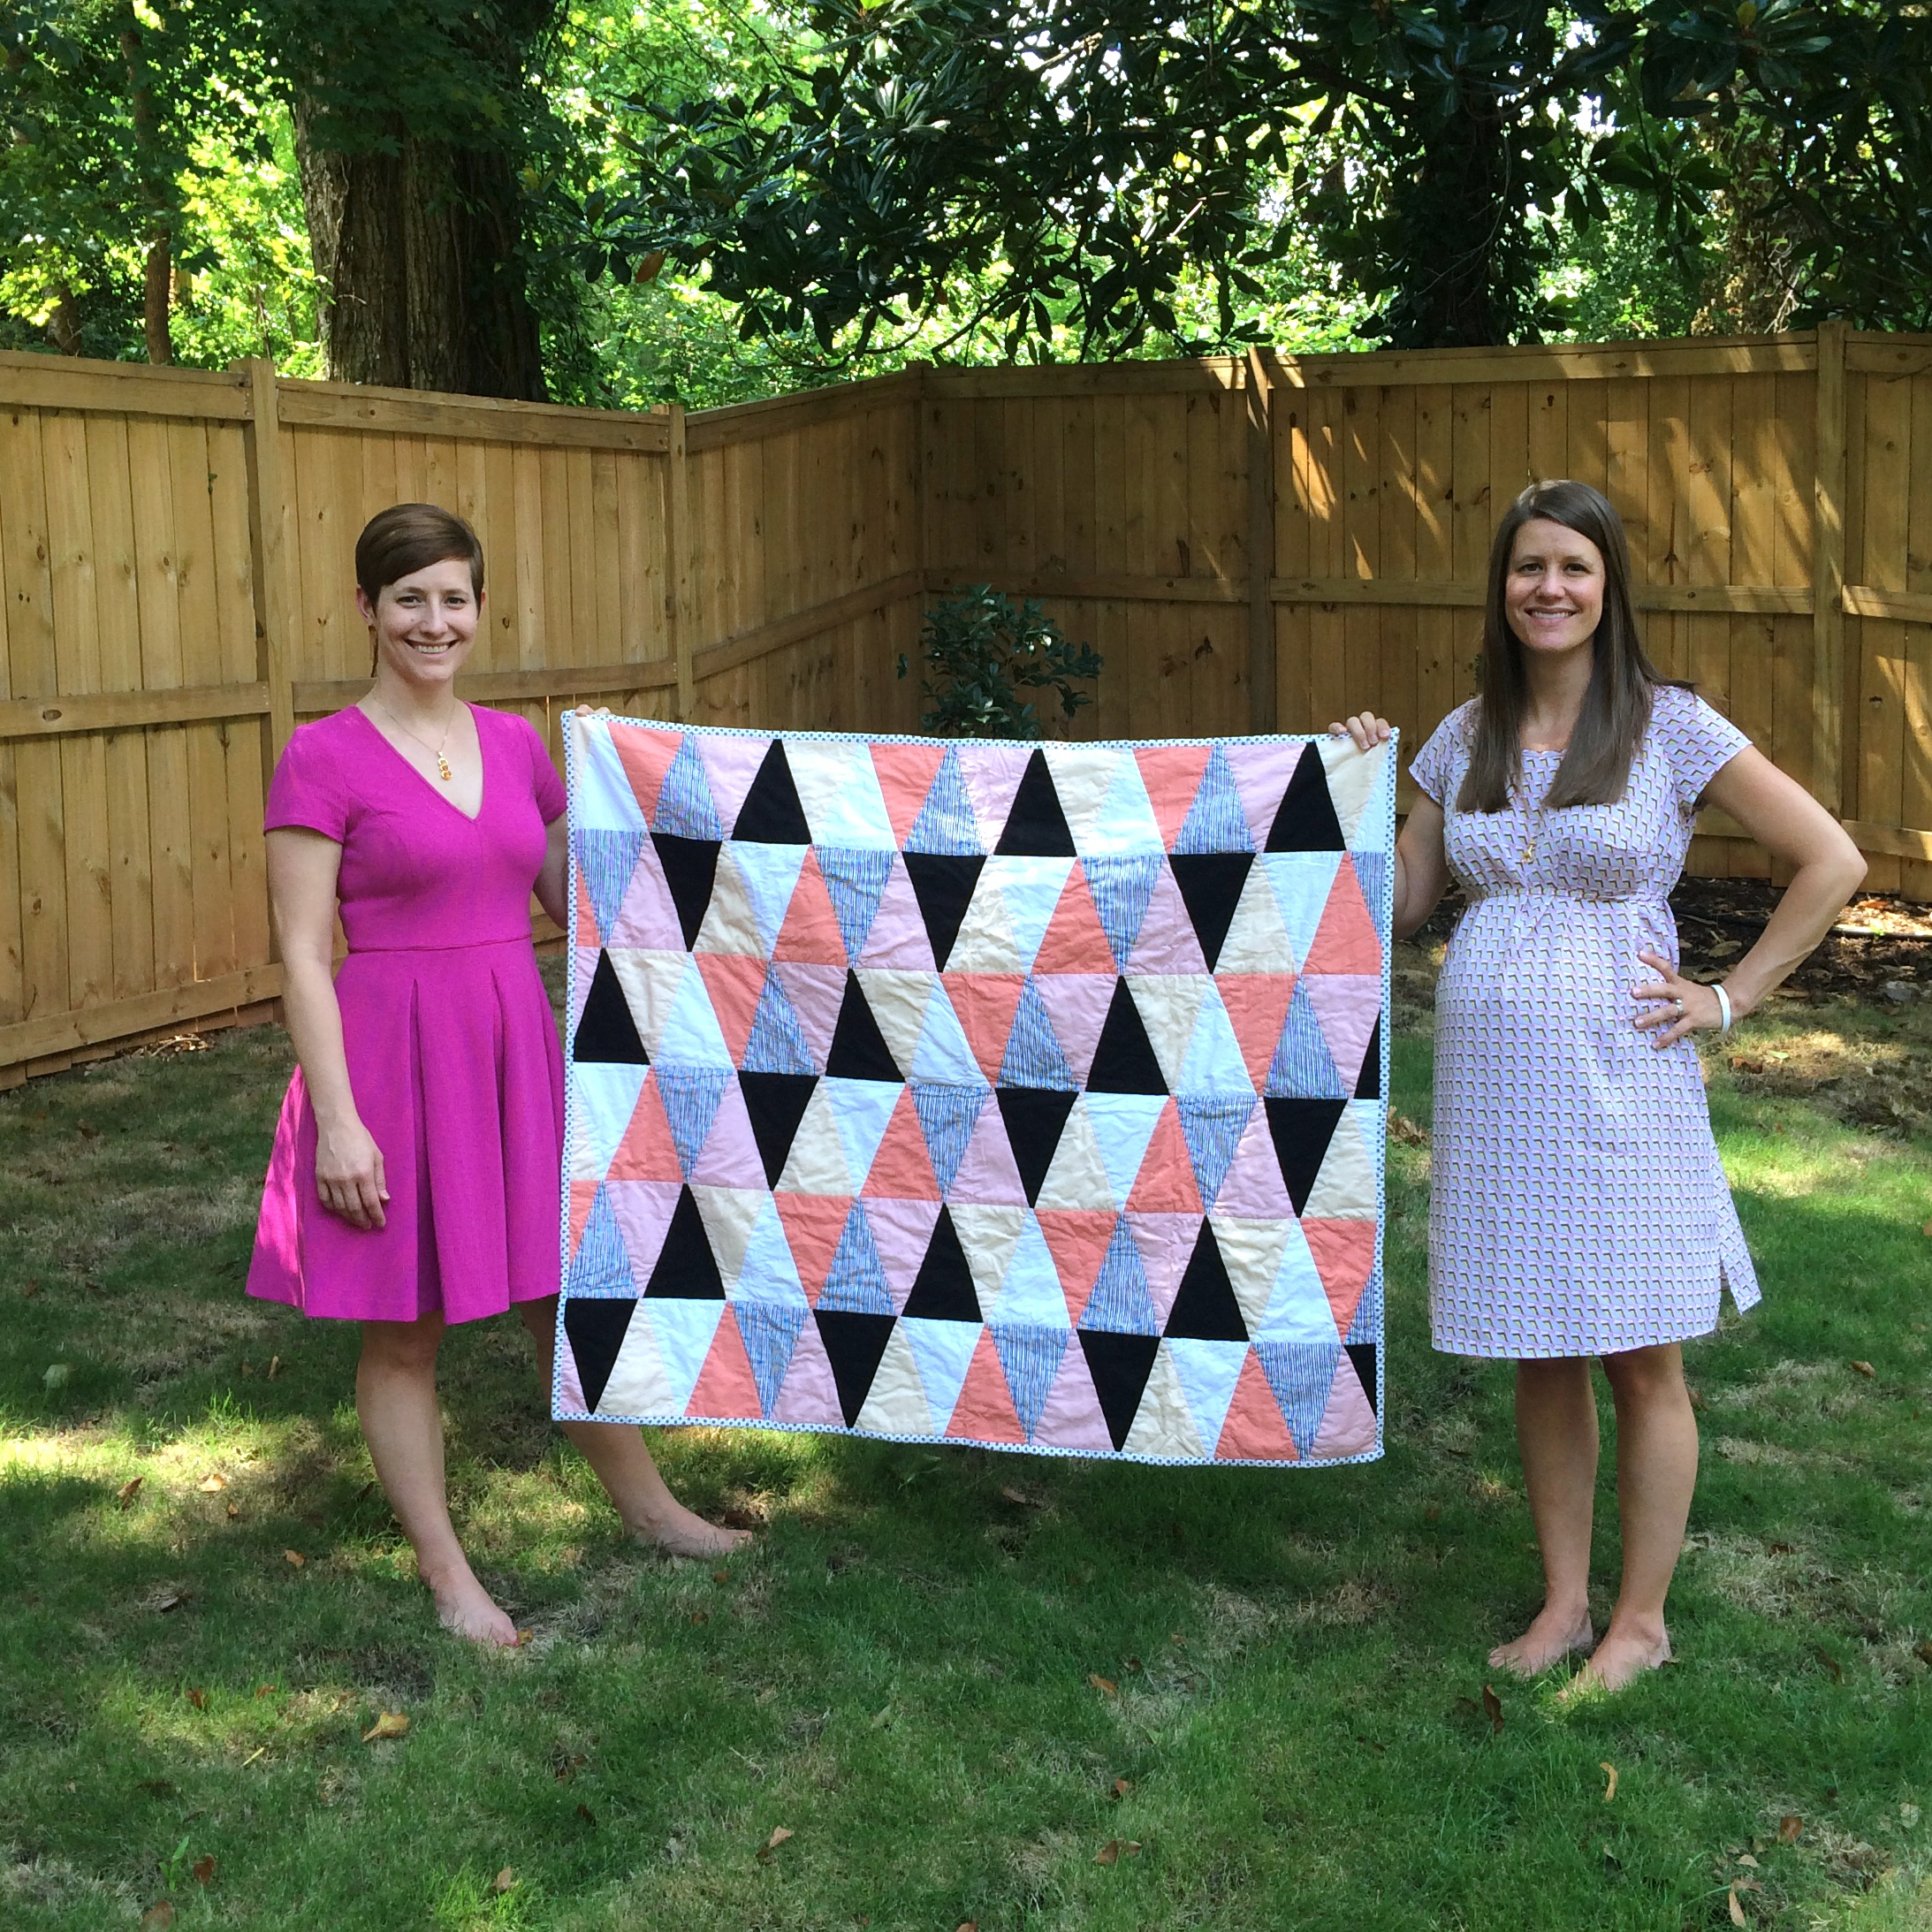 Me and my sister Kate holding my first quilt